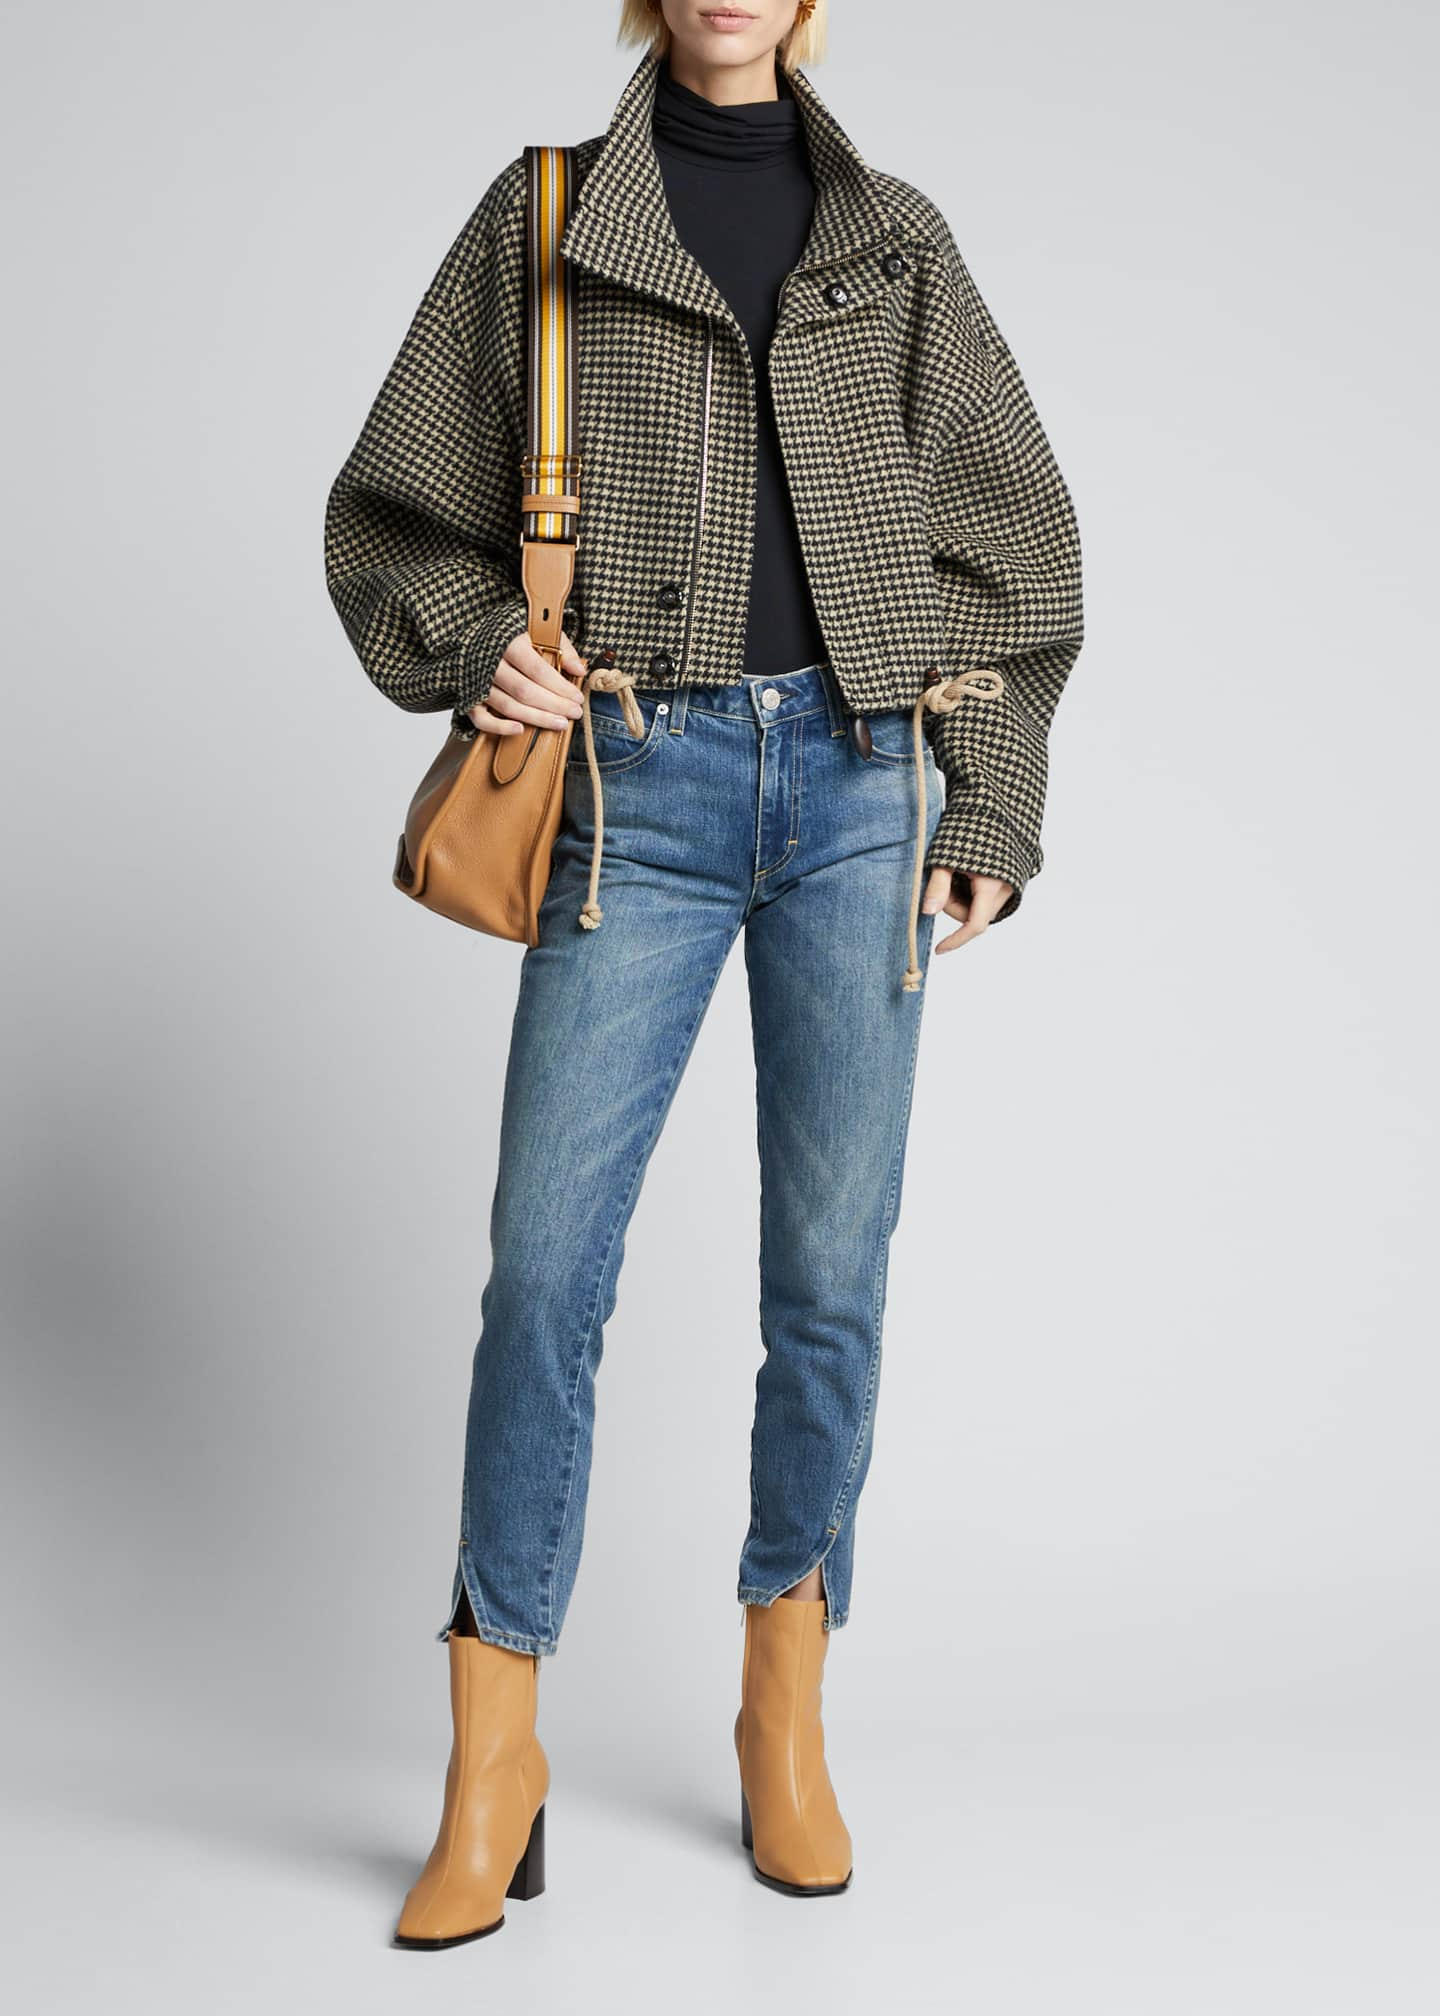 Nanushka Houndstooth Crop Jacket with Faux-Leather Trim